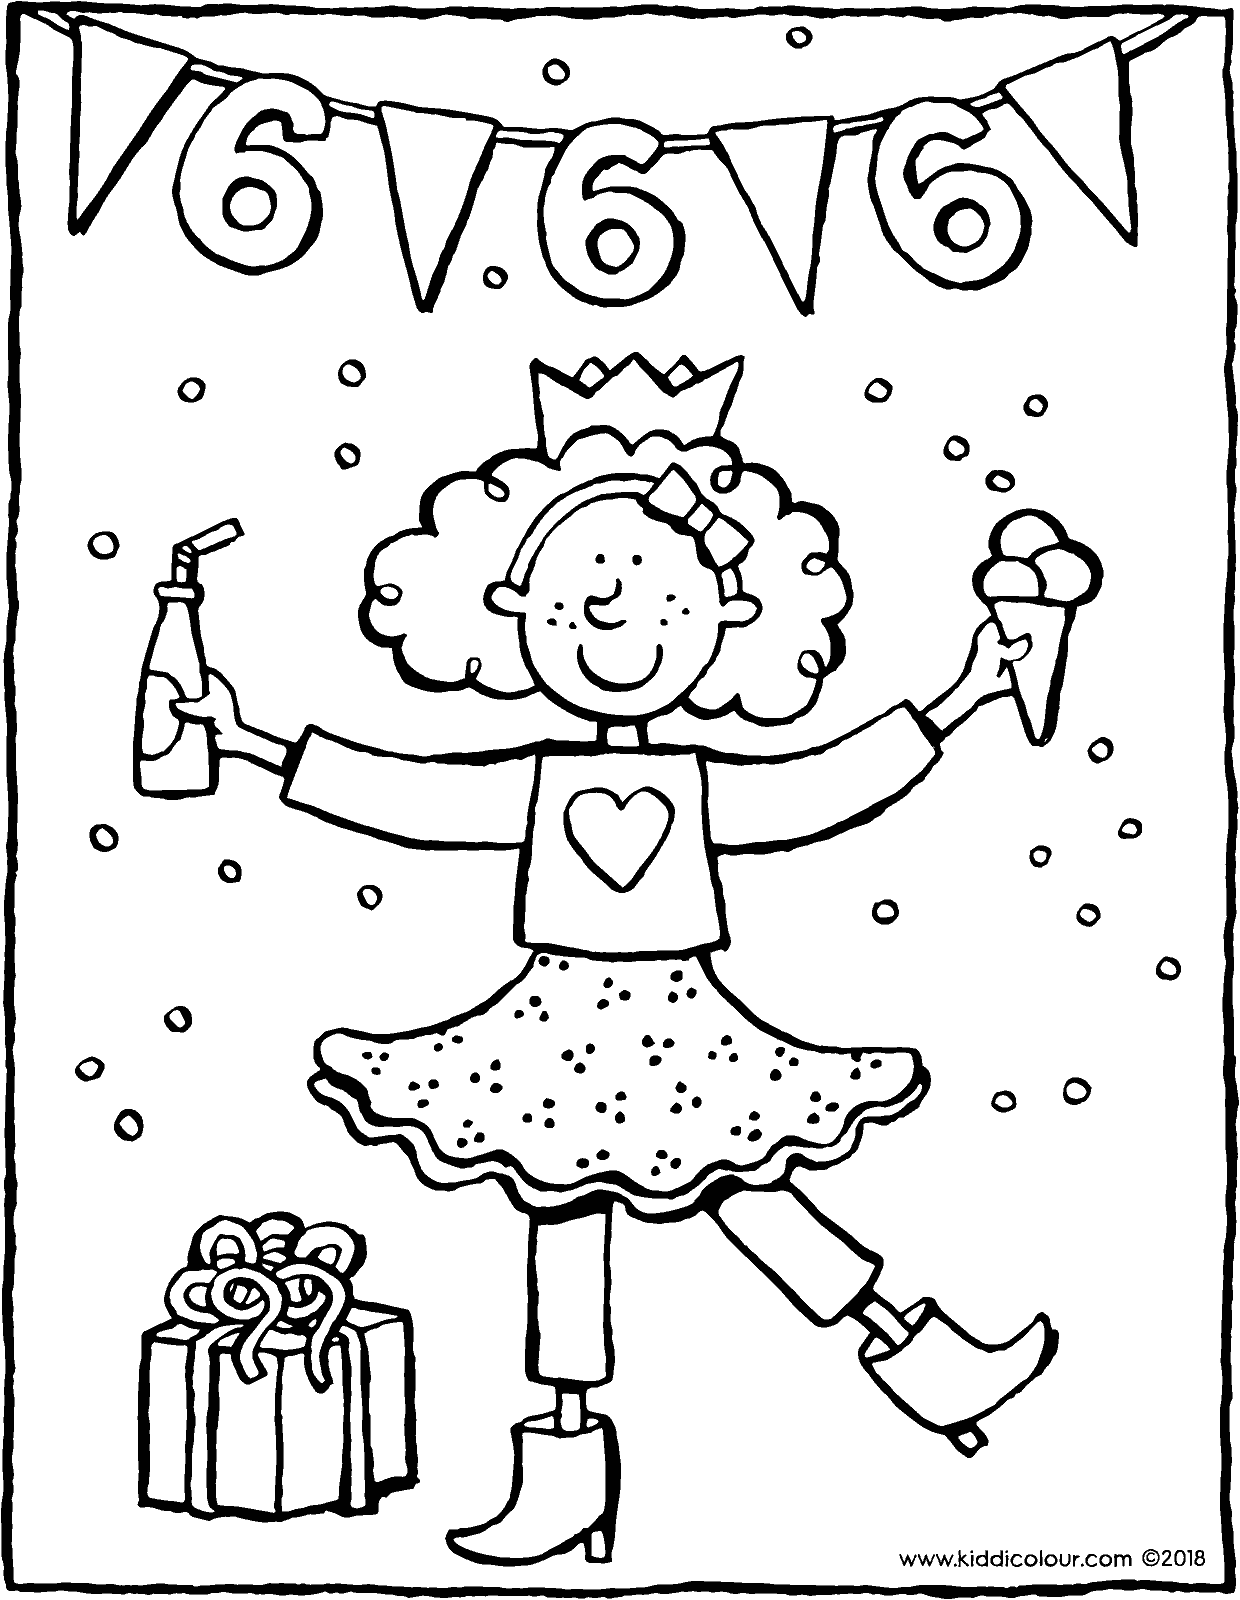 coloring pages 6 year old coloring pages for 6 year olds at getdrawings free download pages coloring old year 6